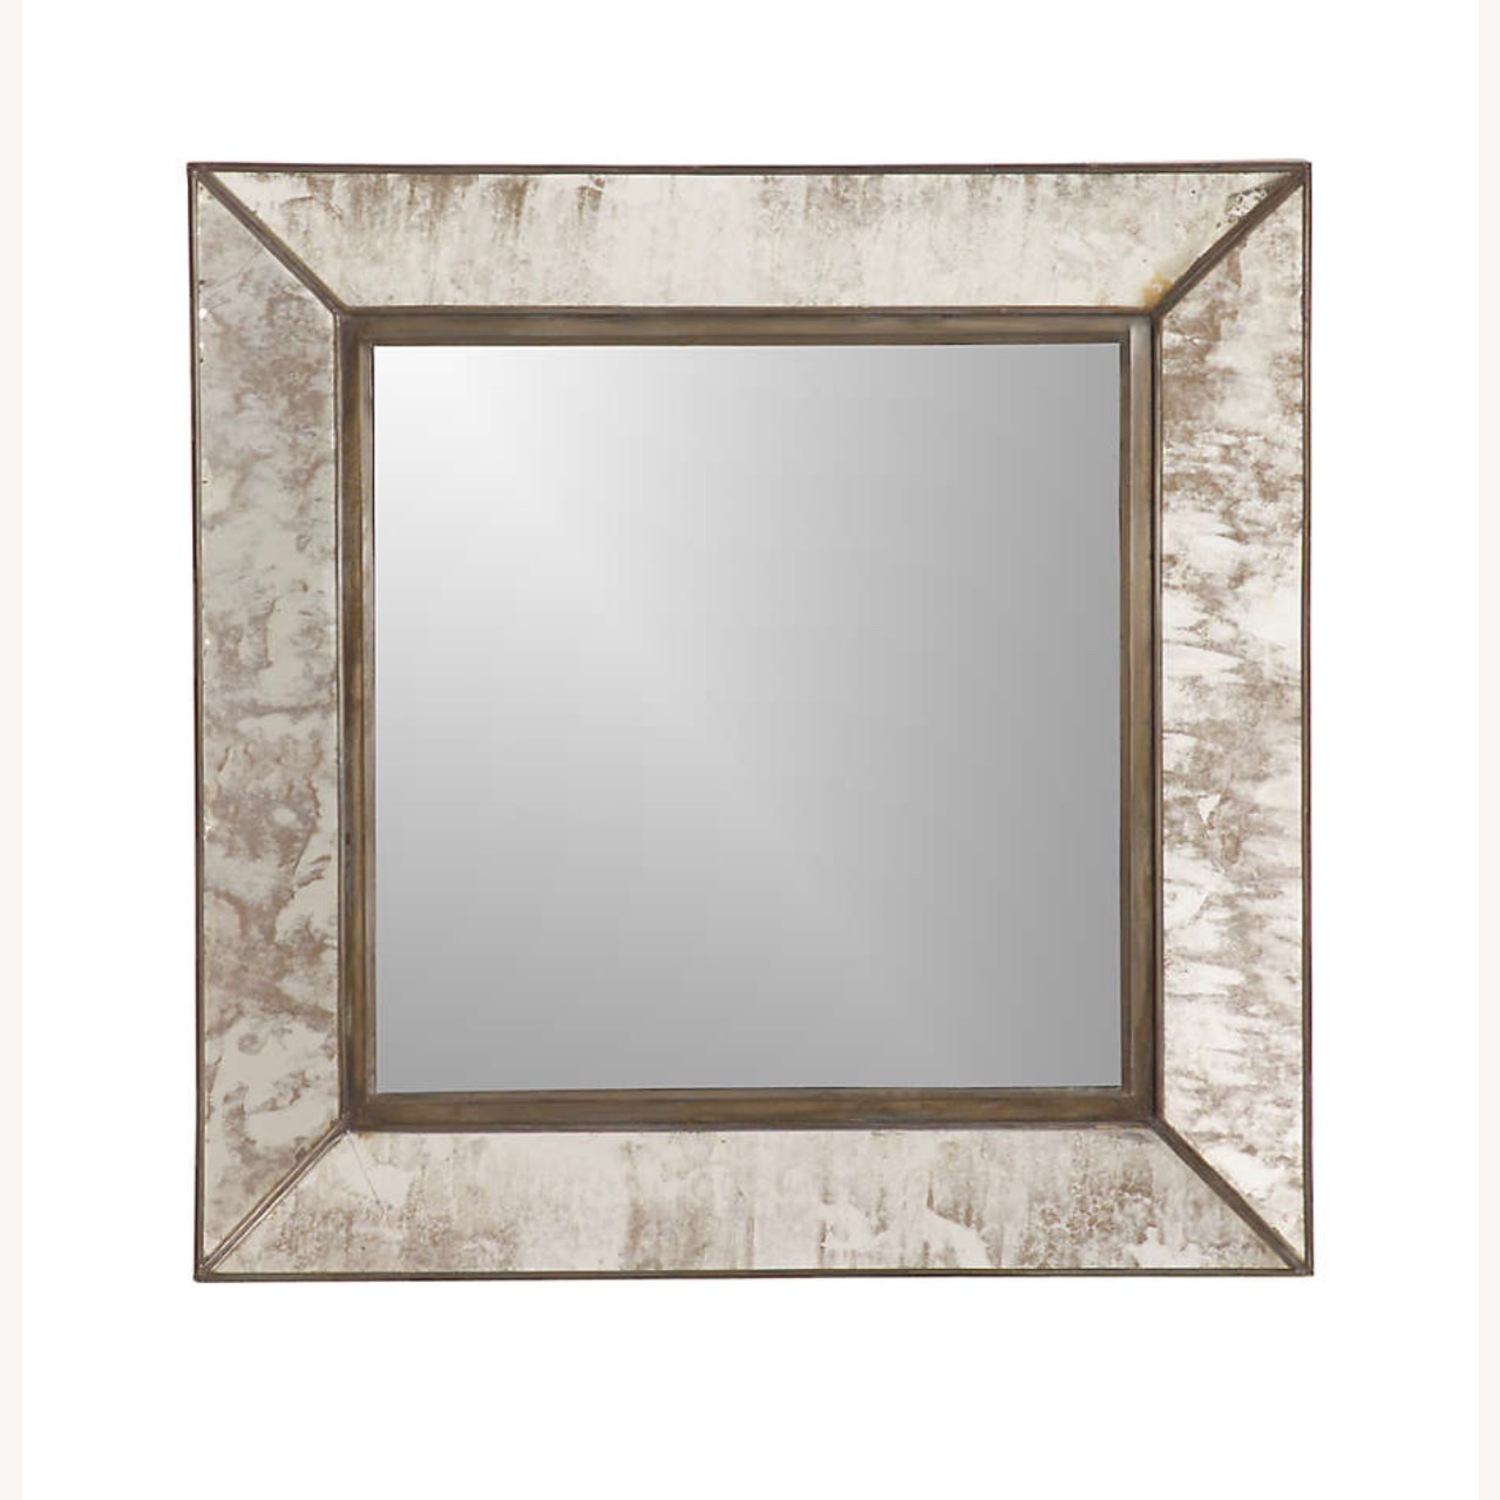 Crate and Barrel Dubois Mirror Set - image-1